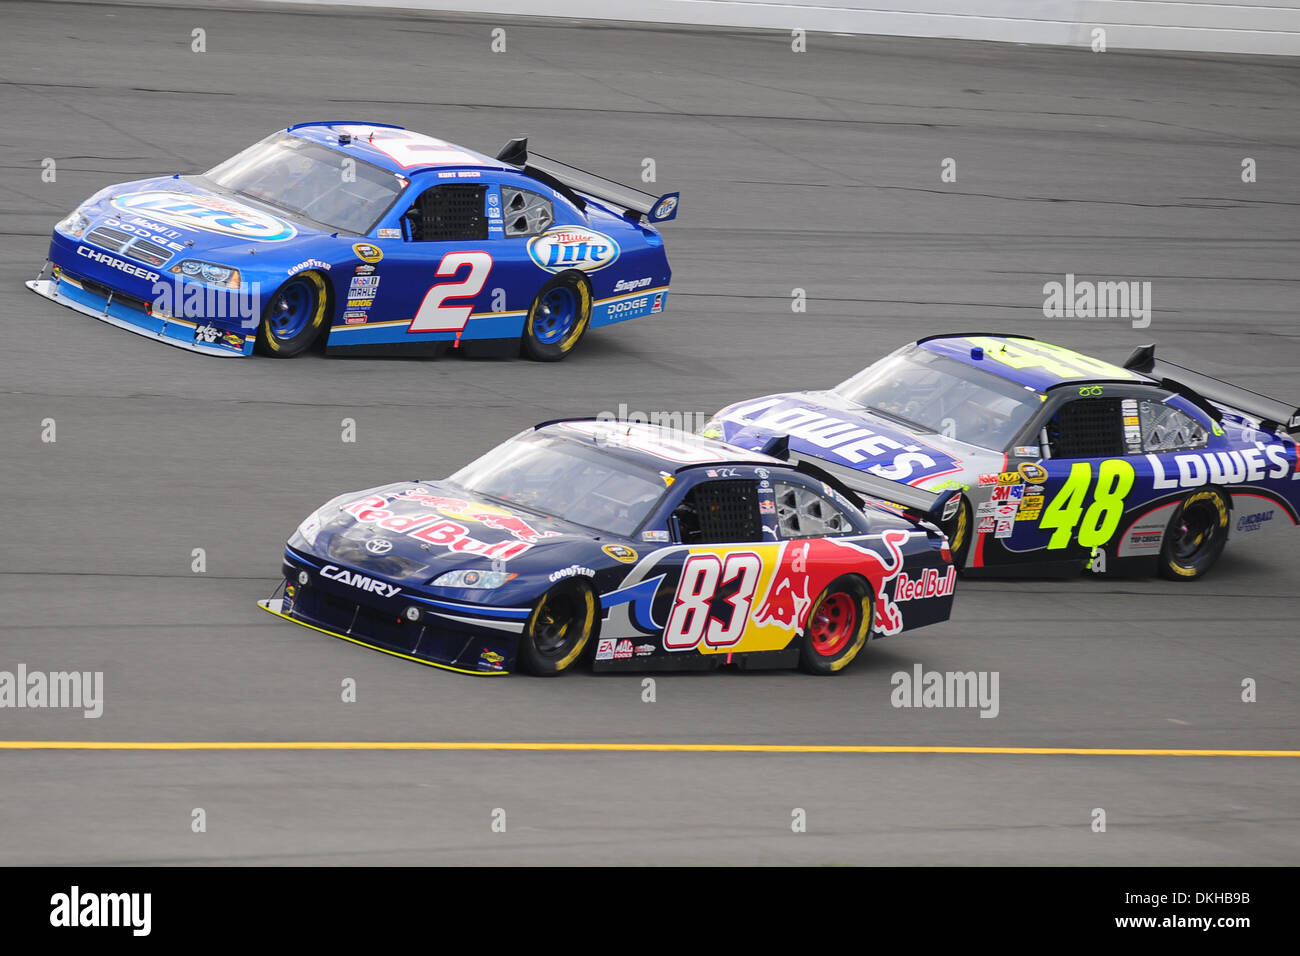 Red Bull driver Brian Vickers ,83, battles the Lowe's Chevrolet of